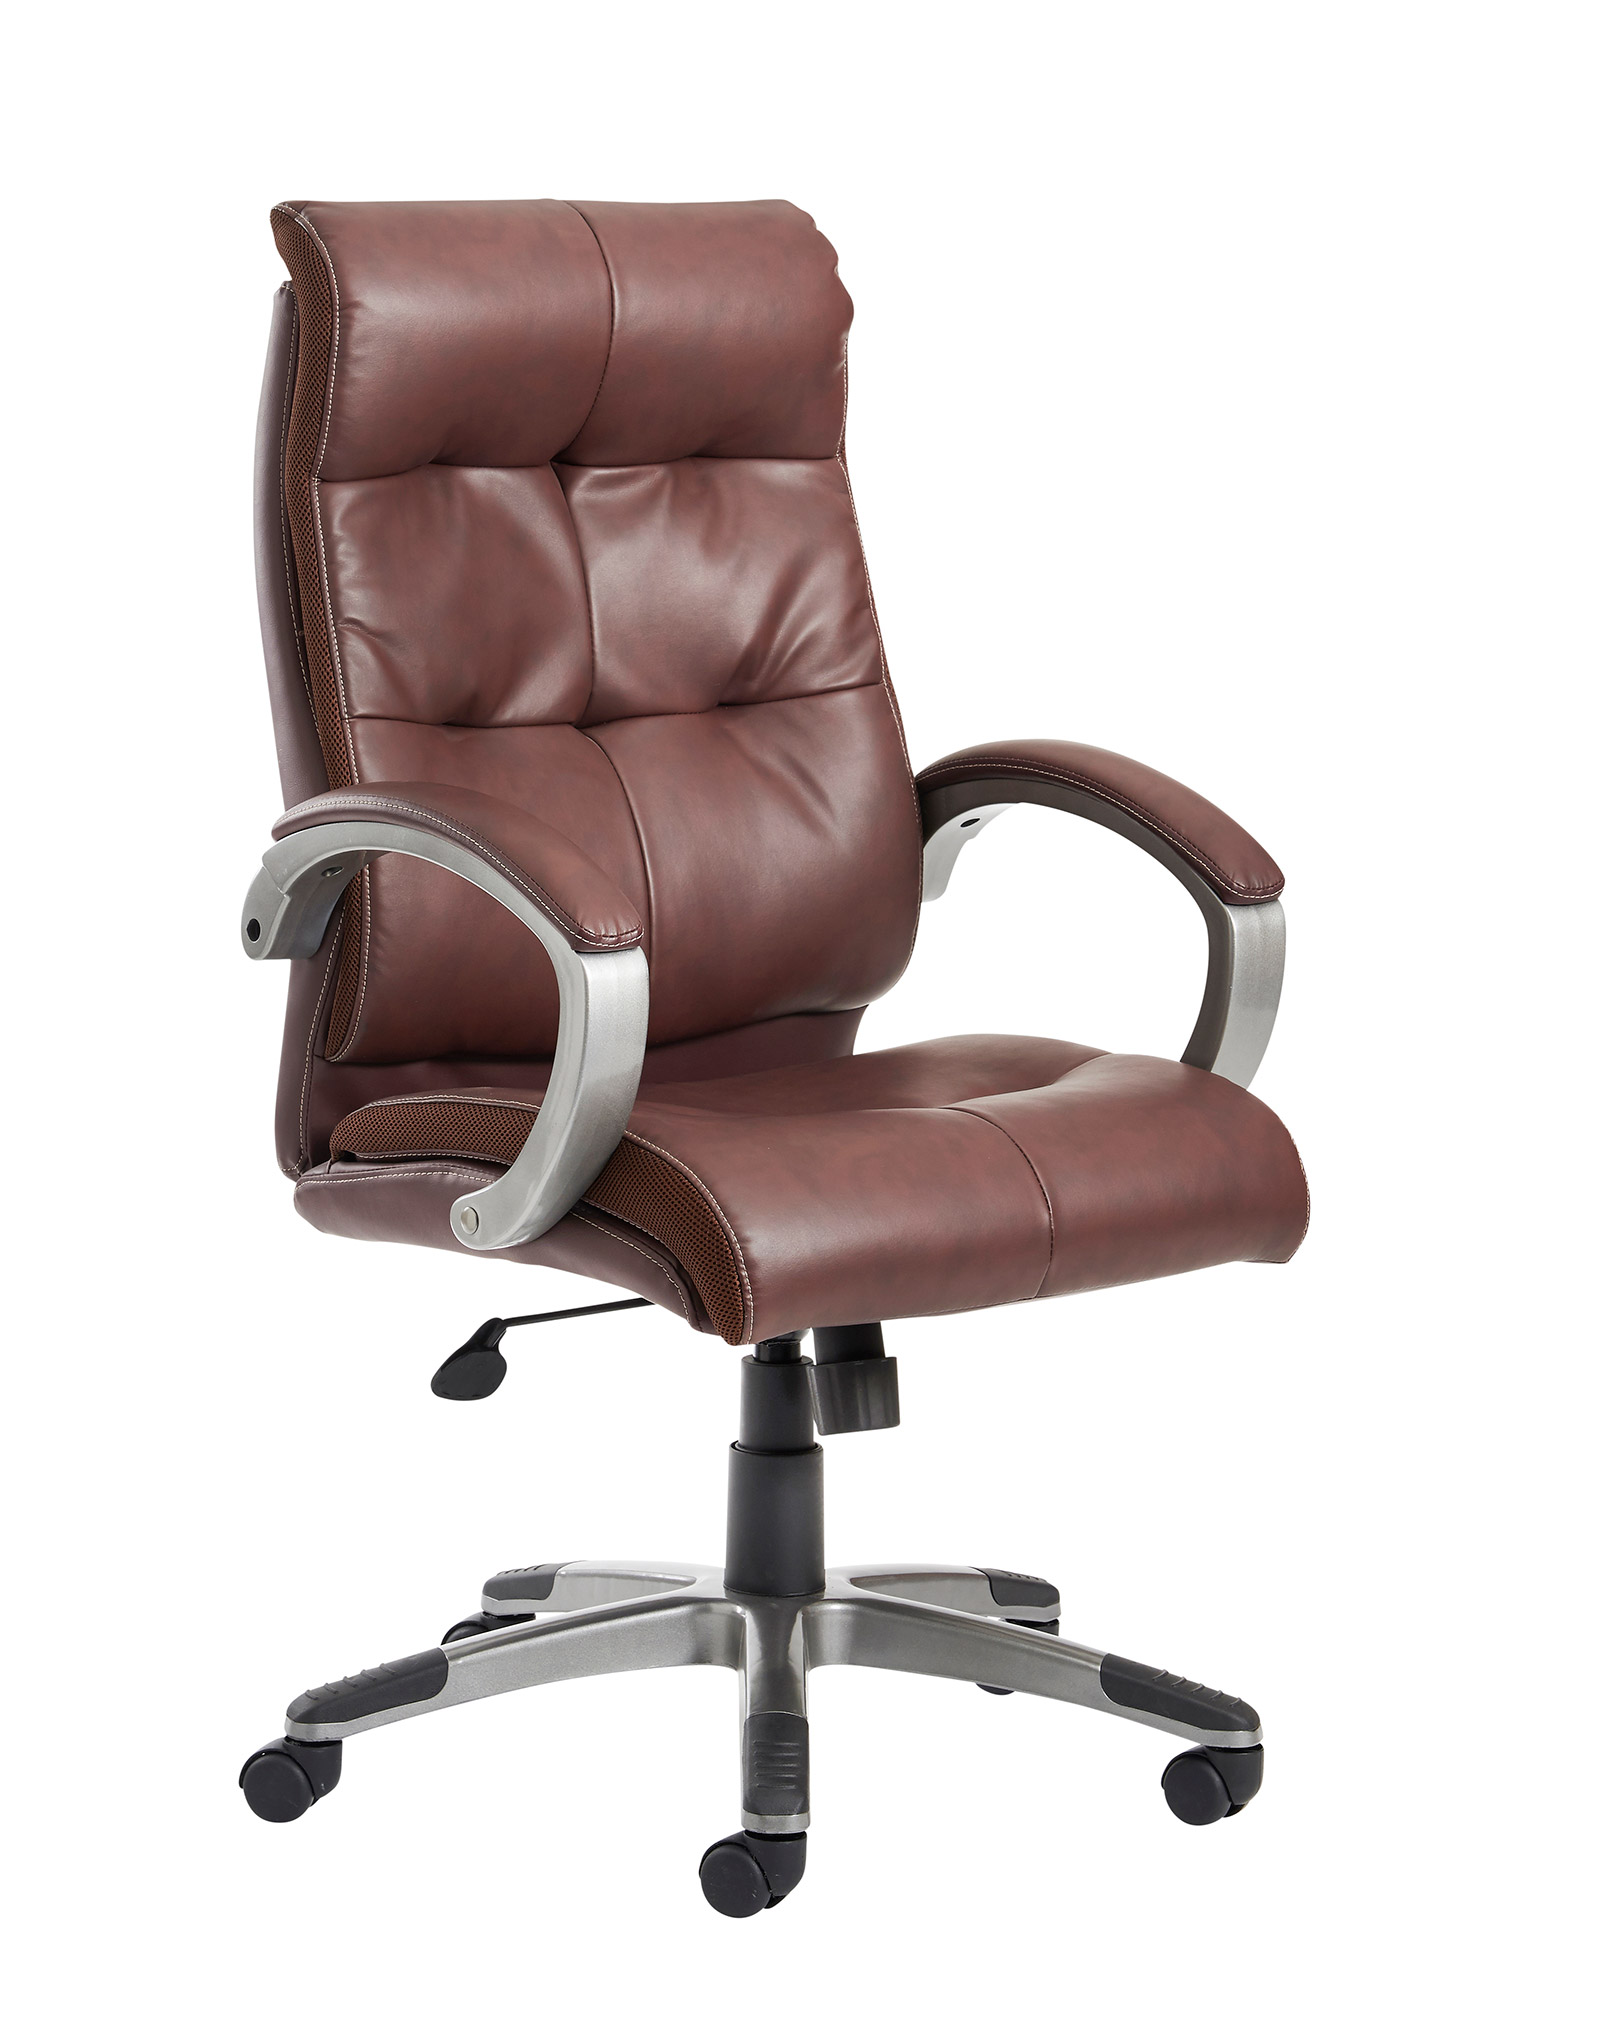 Cantania managers chair in brown leather faced